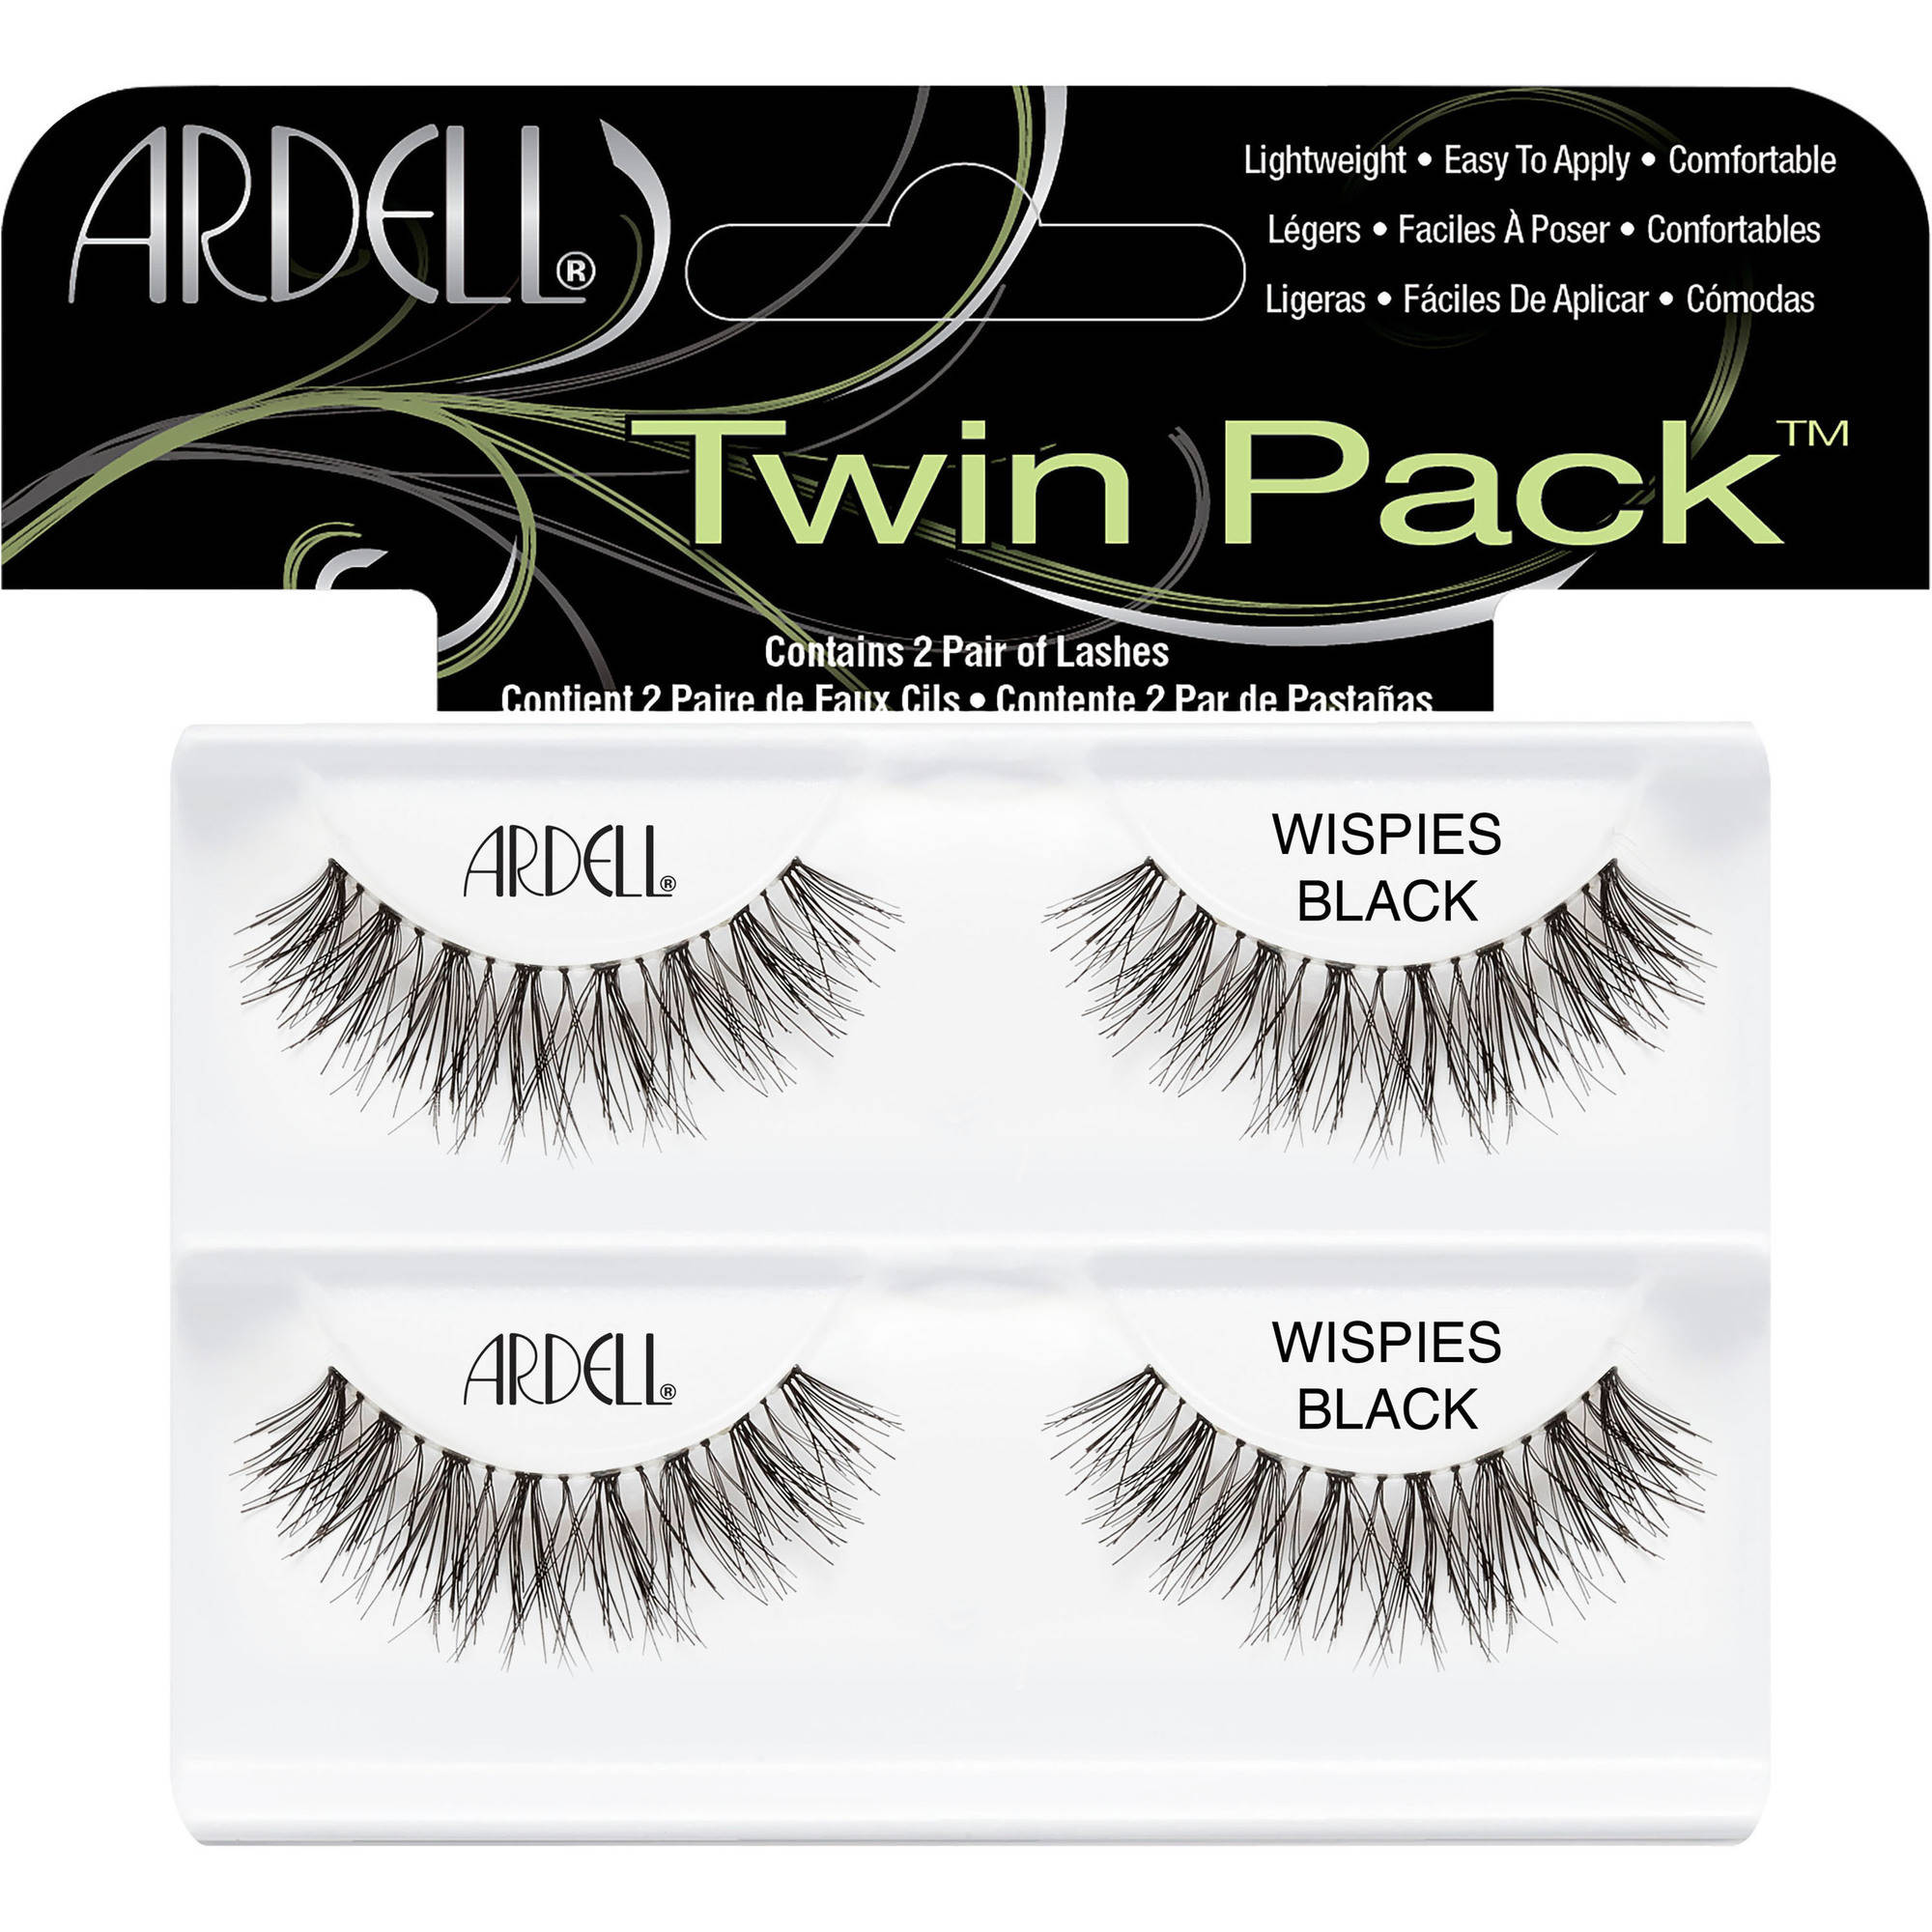 Ardell Twin Pack Wispies Lashes, Black, 2 pair